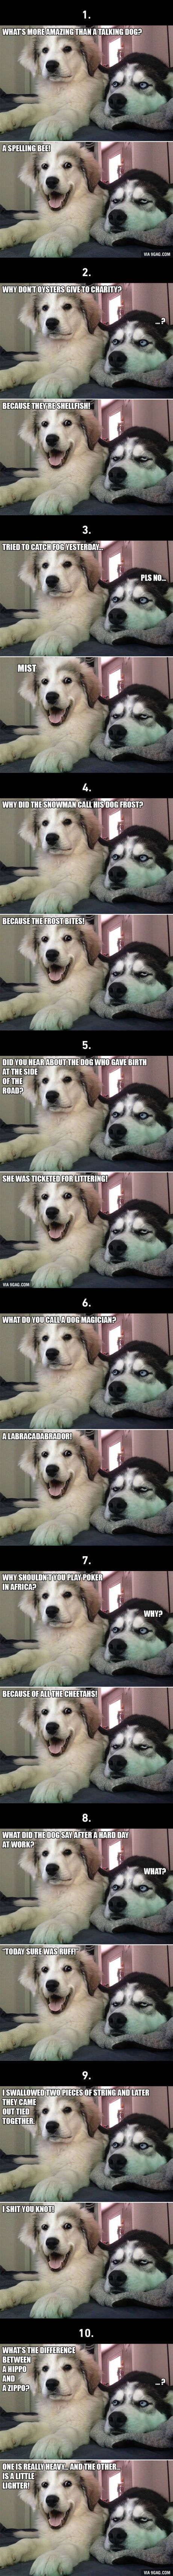 "10 Best ""Bad Puns Dog"" Memes Ever"